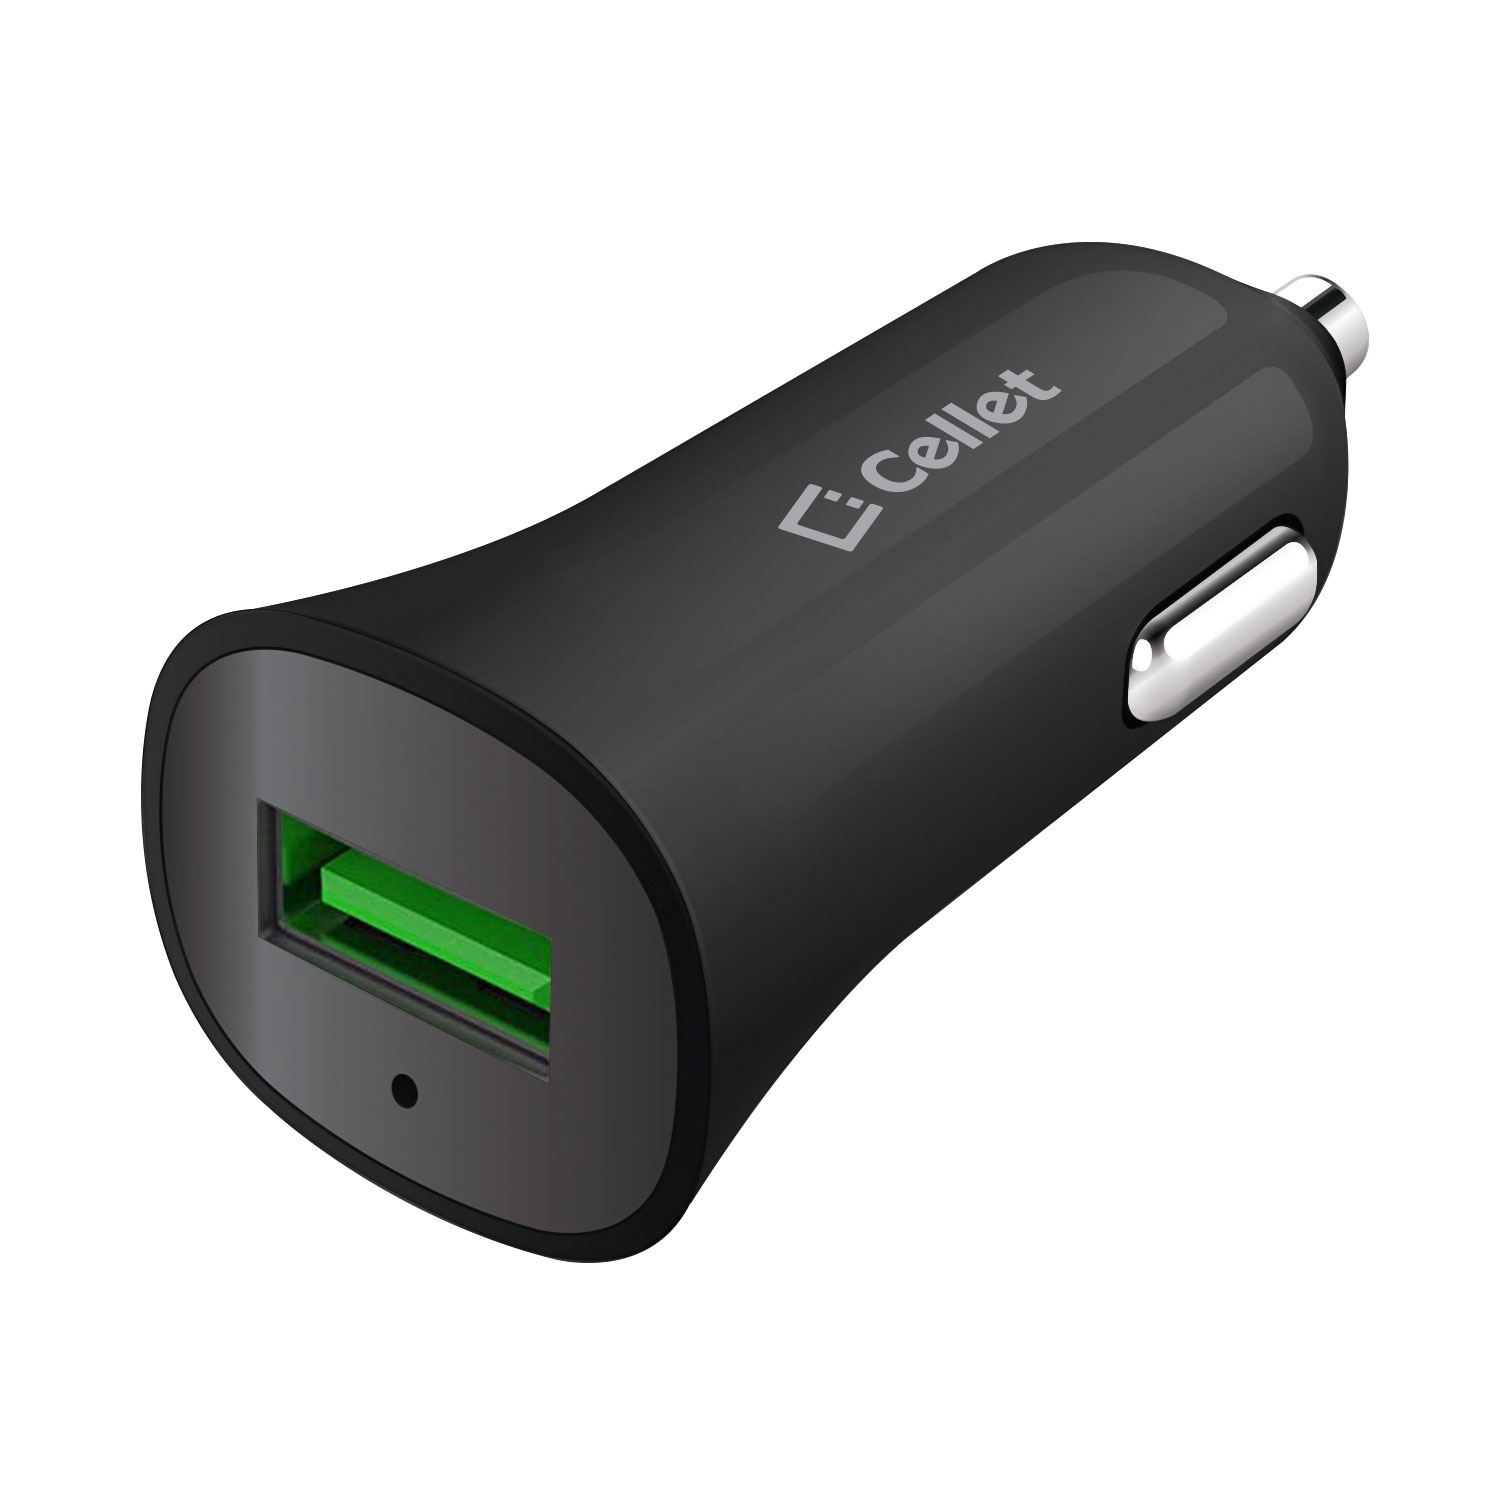 ZTE Majesty Car Charger Quick Charge 3.0 Black 3.3ft